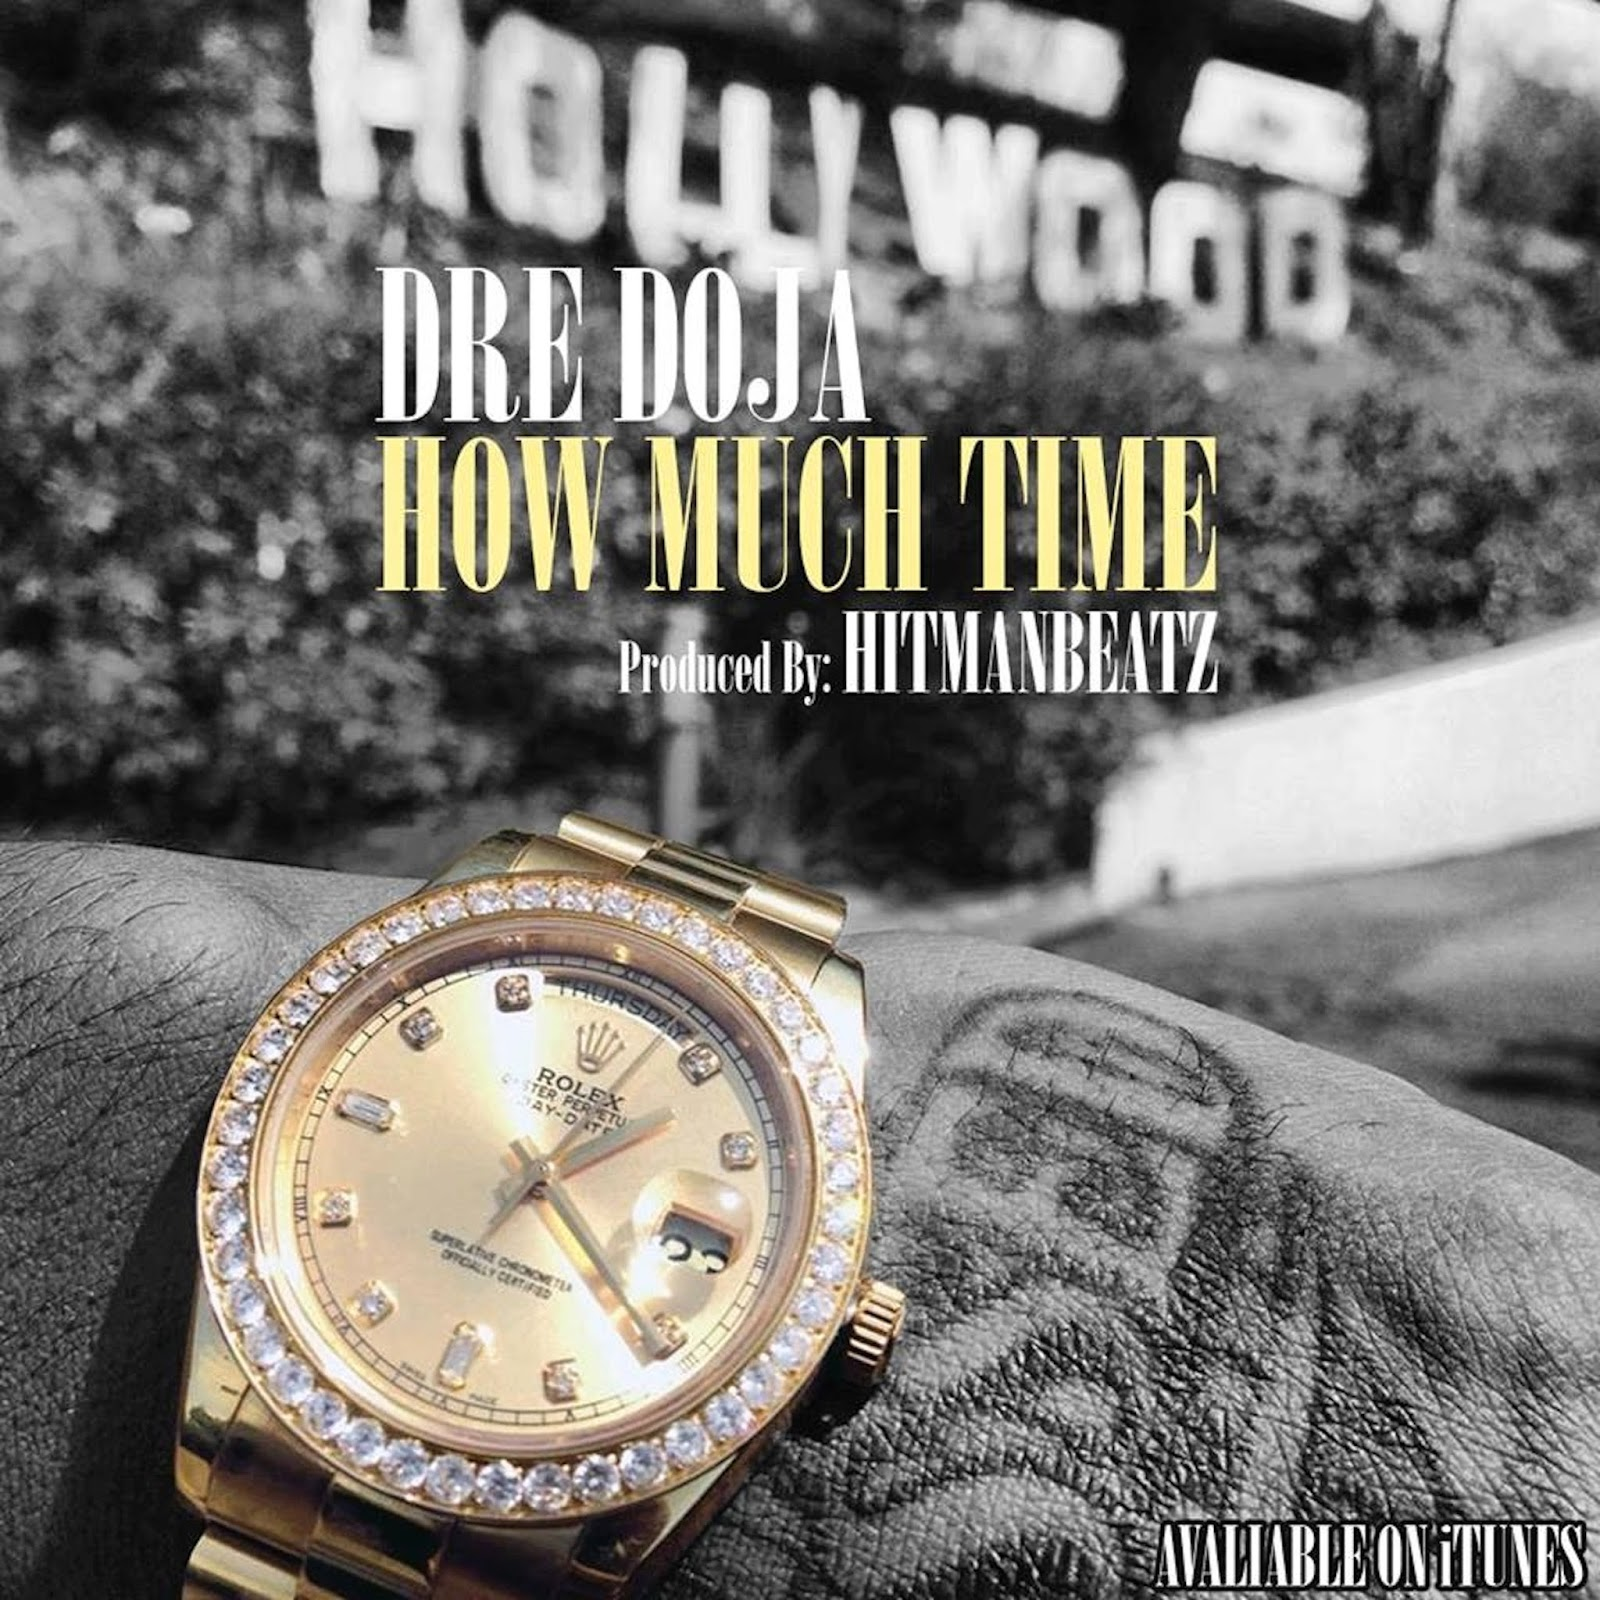 Dre Doja - How Much Time